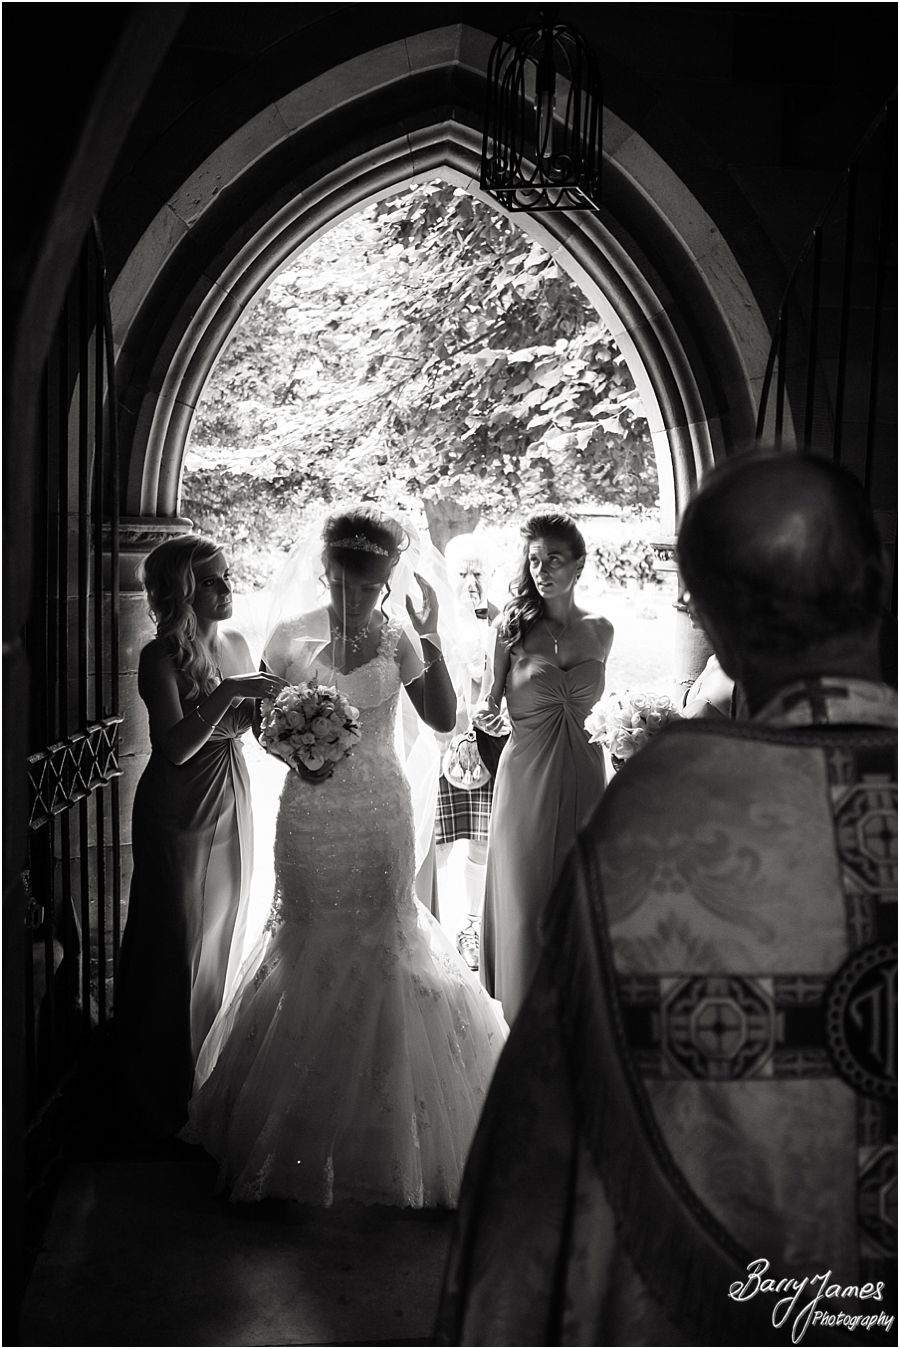 Beautiful storybook wedding photography at Alrewas Hayes in Burton upon Trent, Staffordshire by Professional Wedding Photographer Barry James